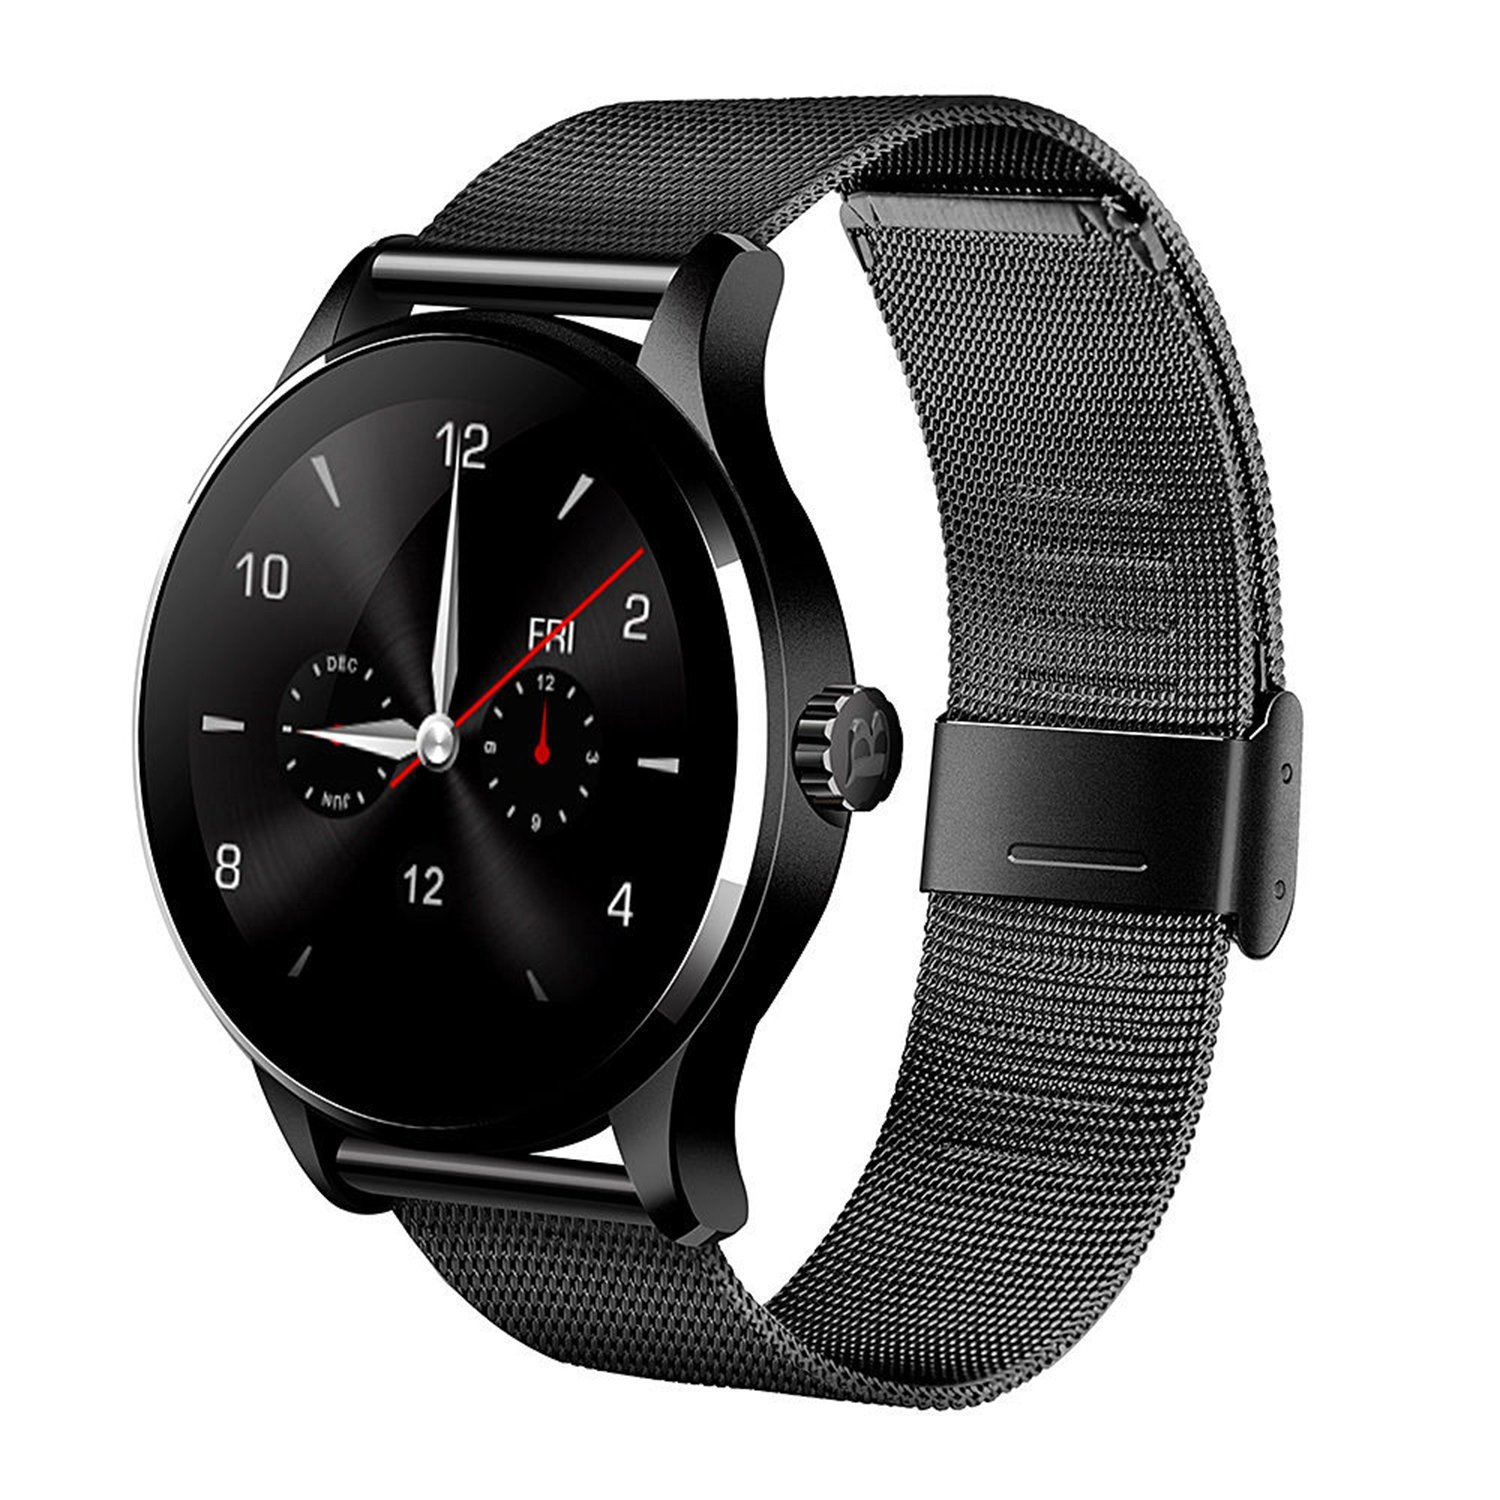 Smart Watch K88H Round Smart Watch IPS Screen Bluetooth 4.0 Heart Rate Monitor Sync Calls Messages IOS Android Phones ataliqi k88h smart watch round screen support heart rate monitor bluetooth smart watch for apple huawei xiaomi phone ios android